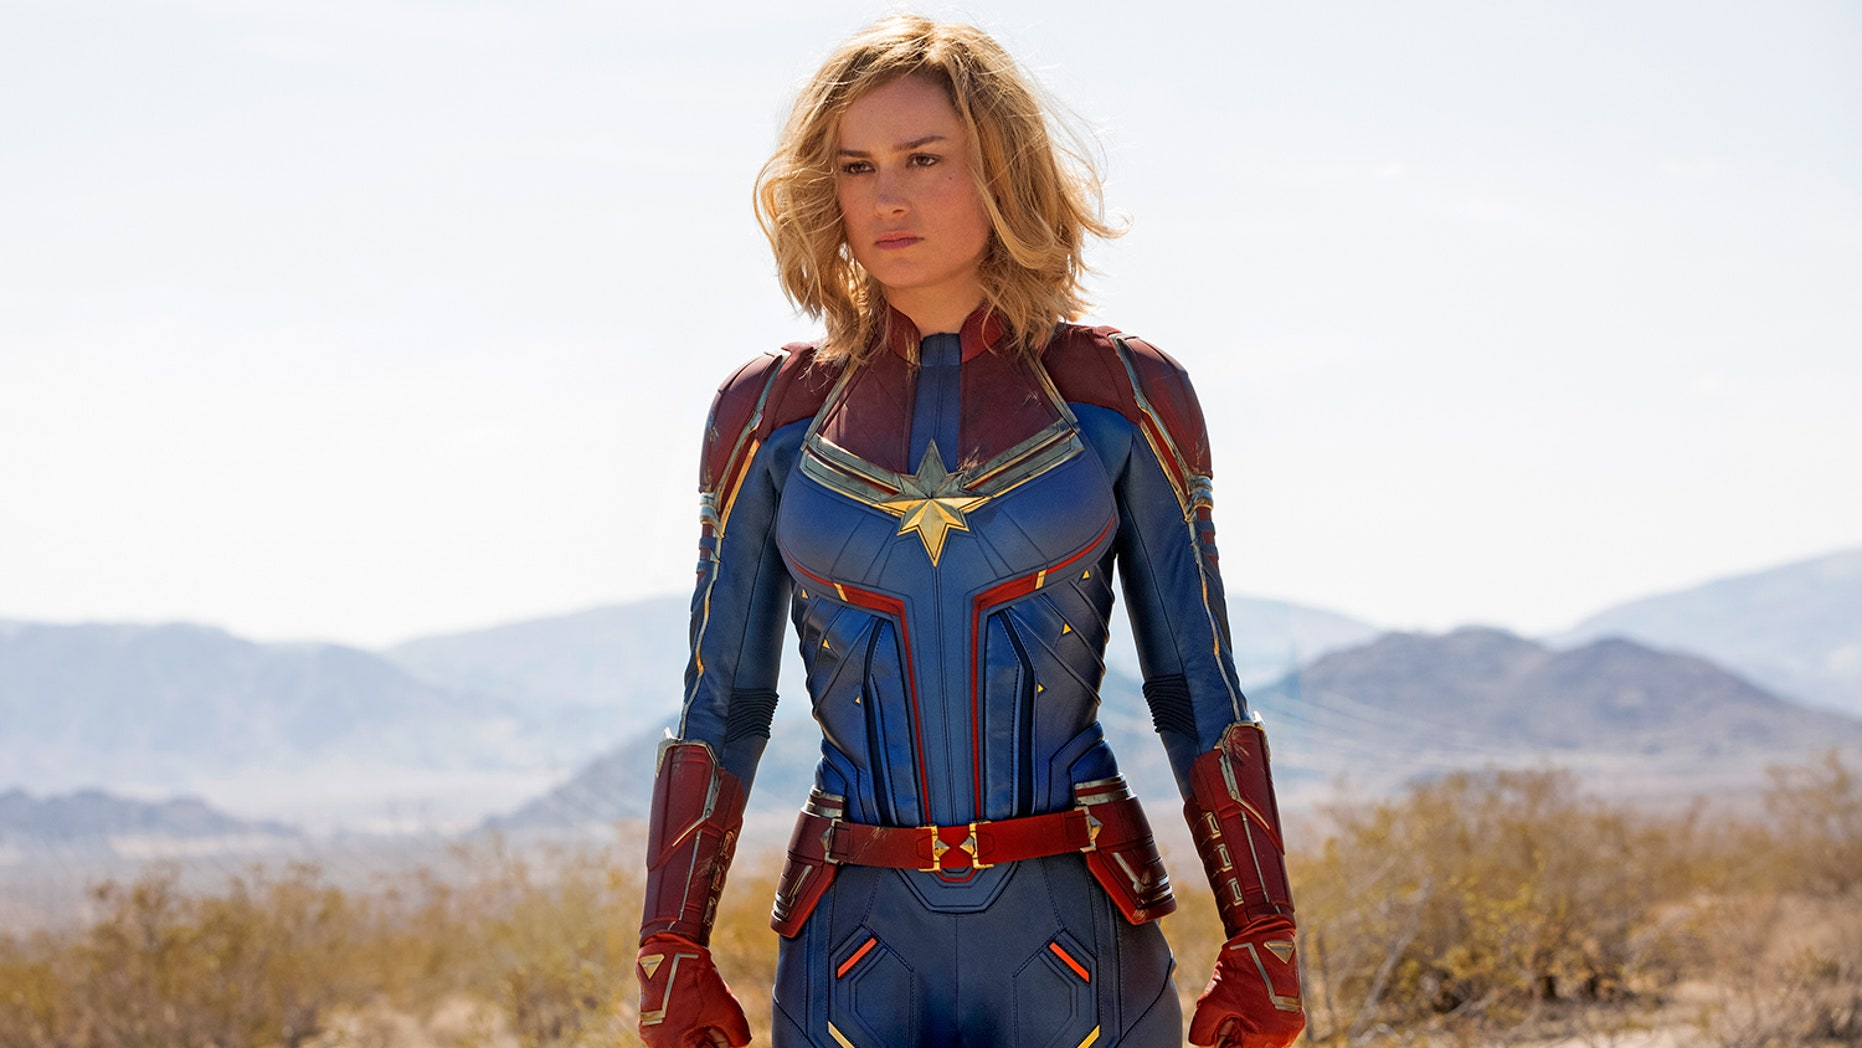 """Brie Larson stars as """"Captain Marvel,"""" a space-traveling superhero who returns to Earth to fight off an invasion. The film hits theaters March 8, 2019."""